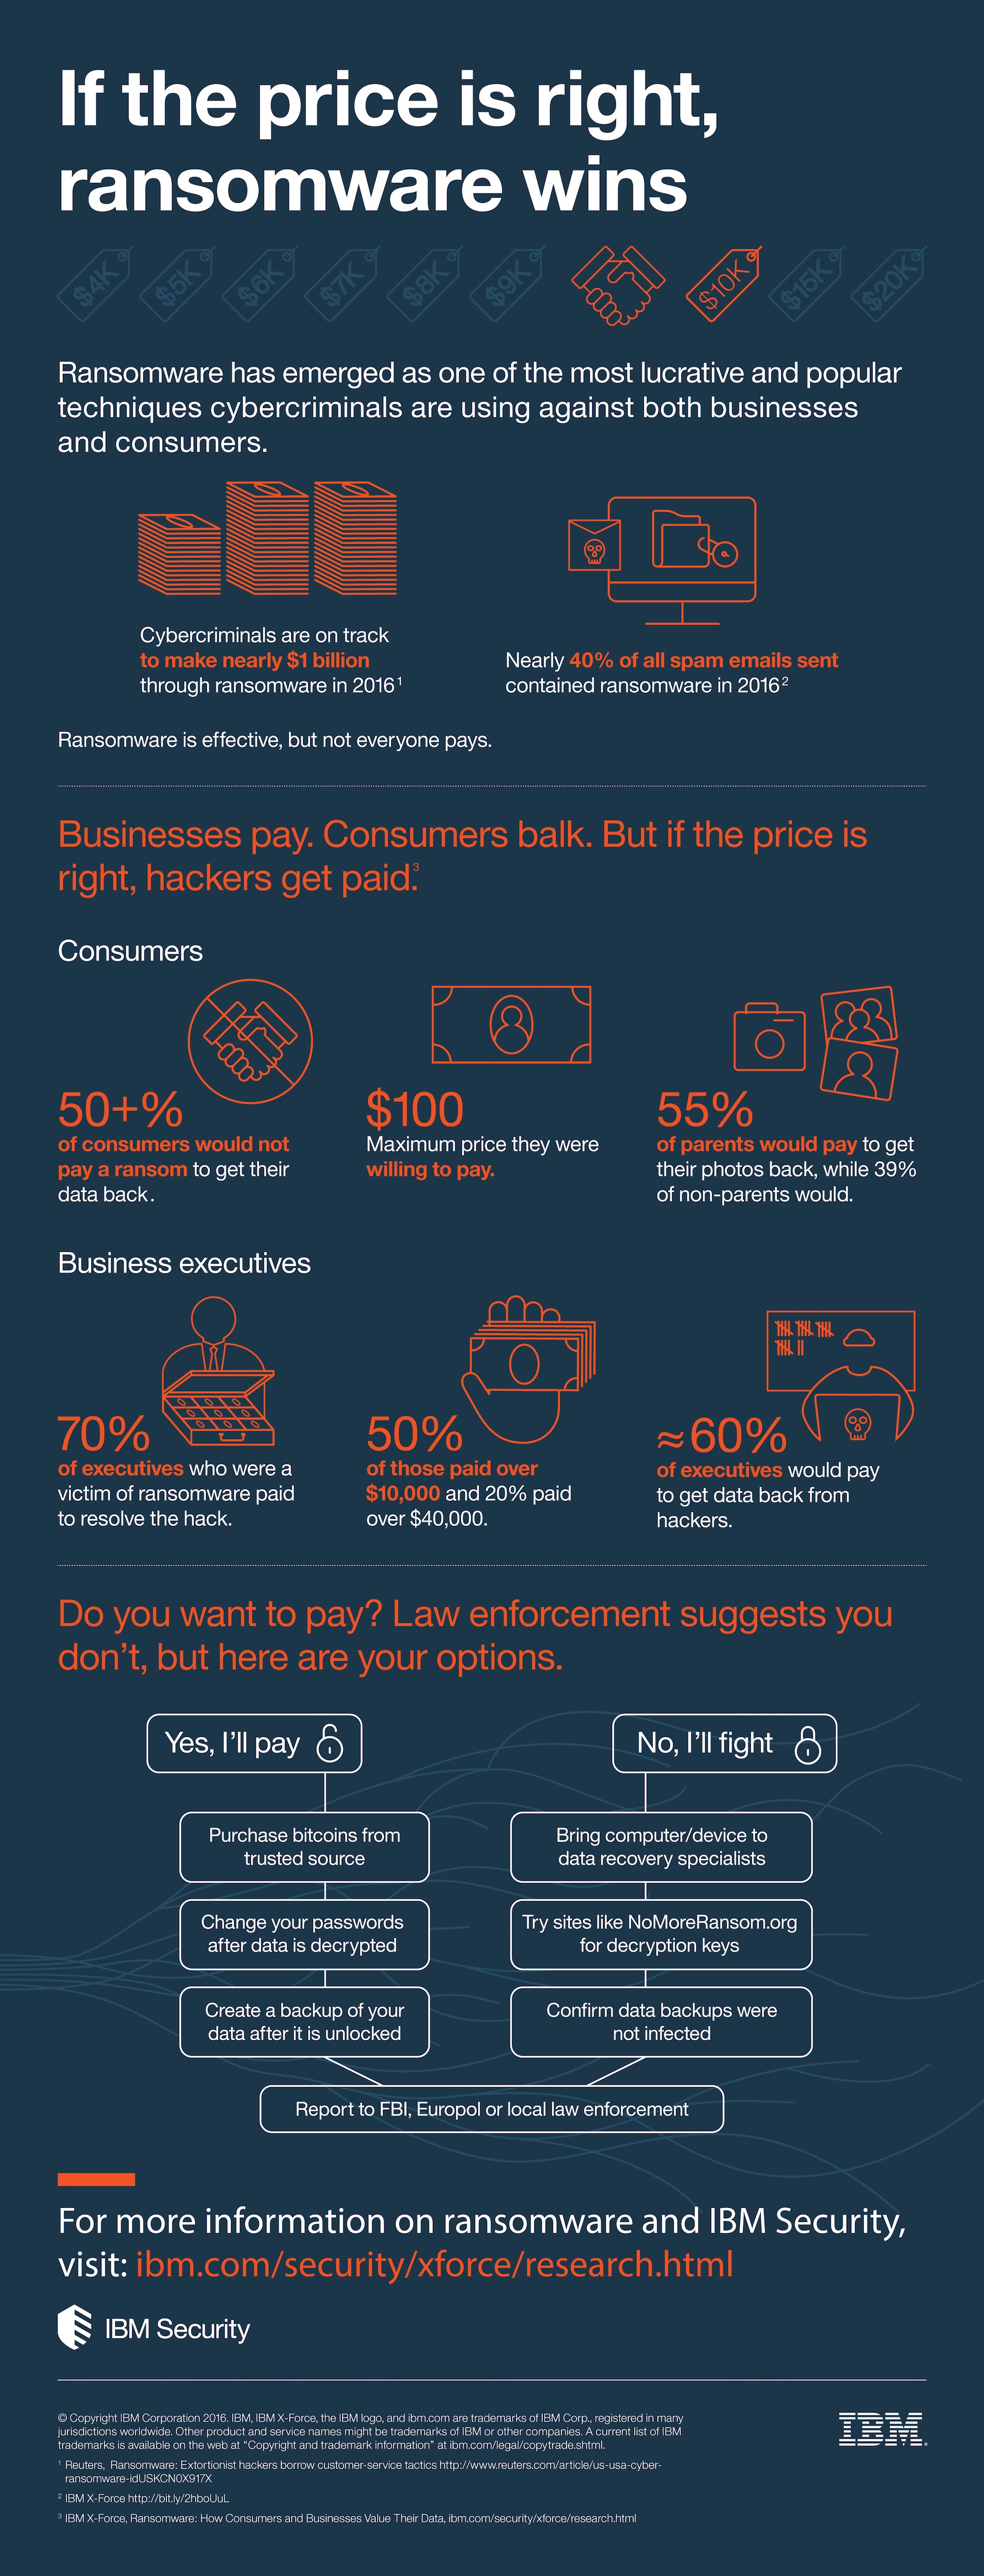 IBM Security Ransomware Infographic_12-13-2016